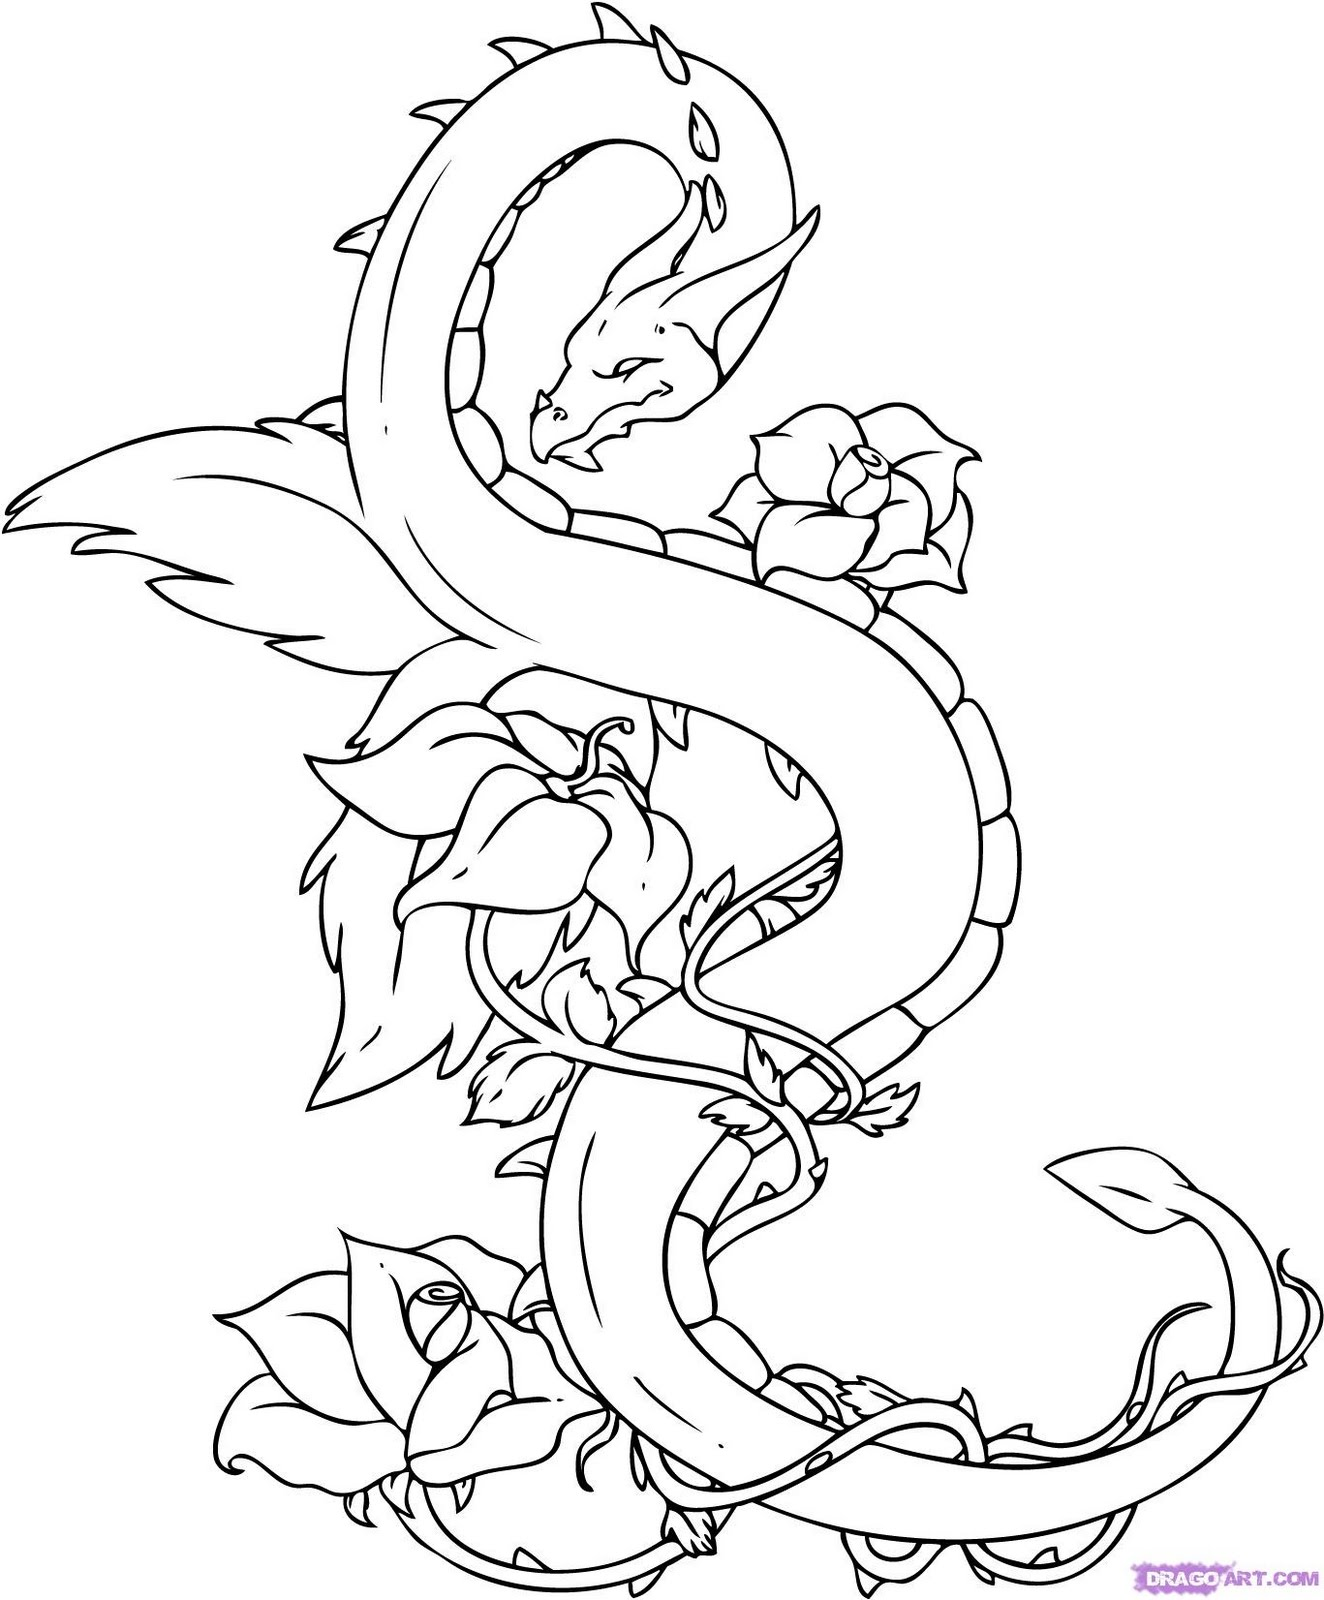 free tattoo coloring pages 8 tattoo design adults coloring pages with images pages tattoo free coloring